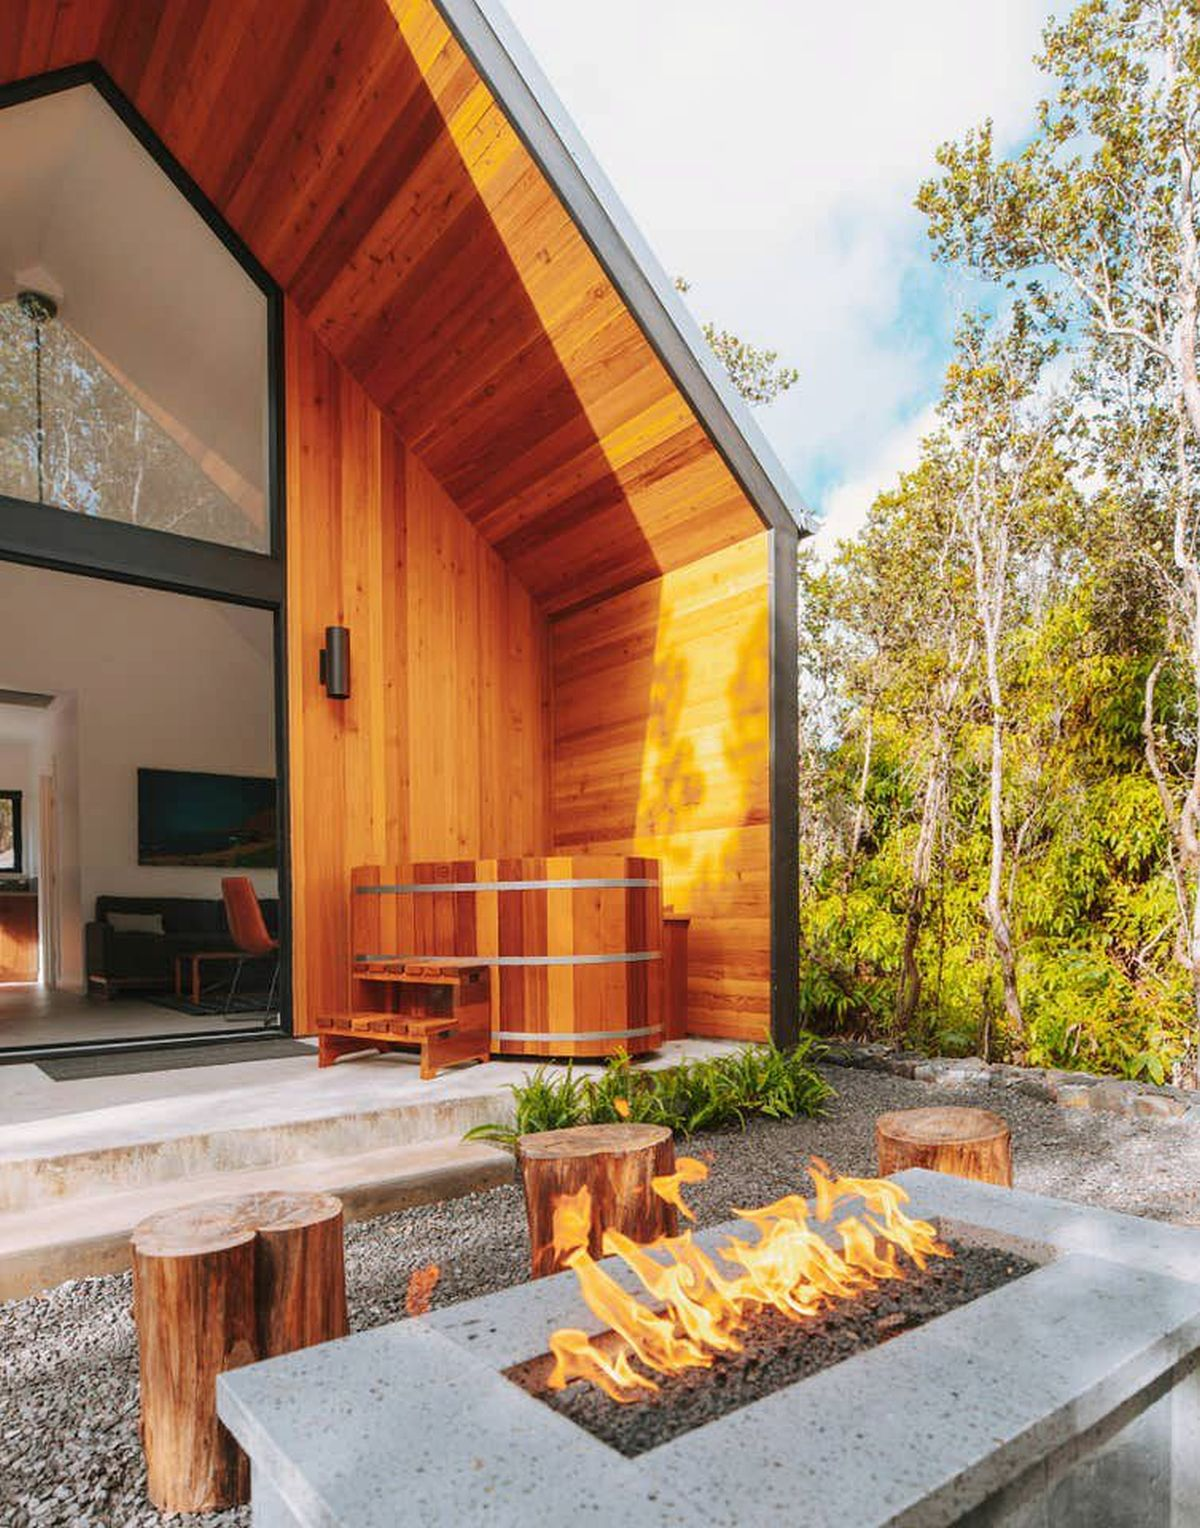 Out on the patio there's a deep soaking tub made of cedar wood